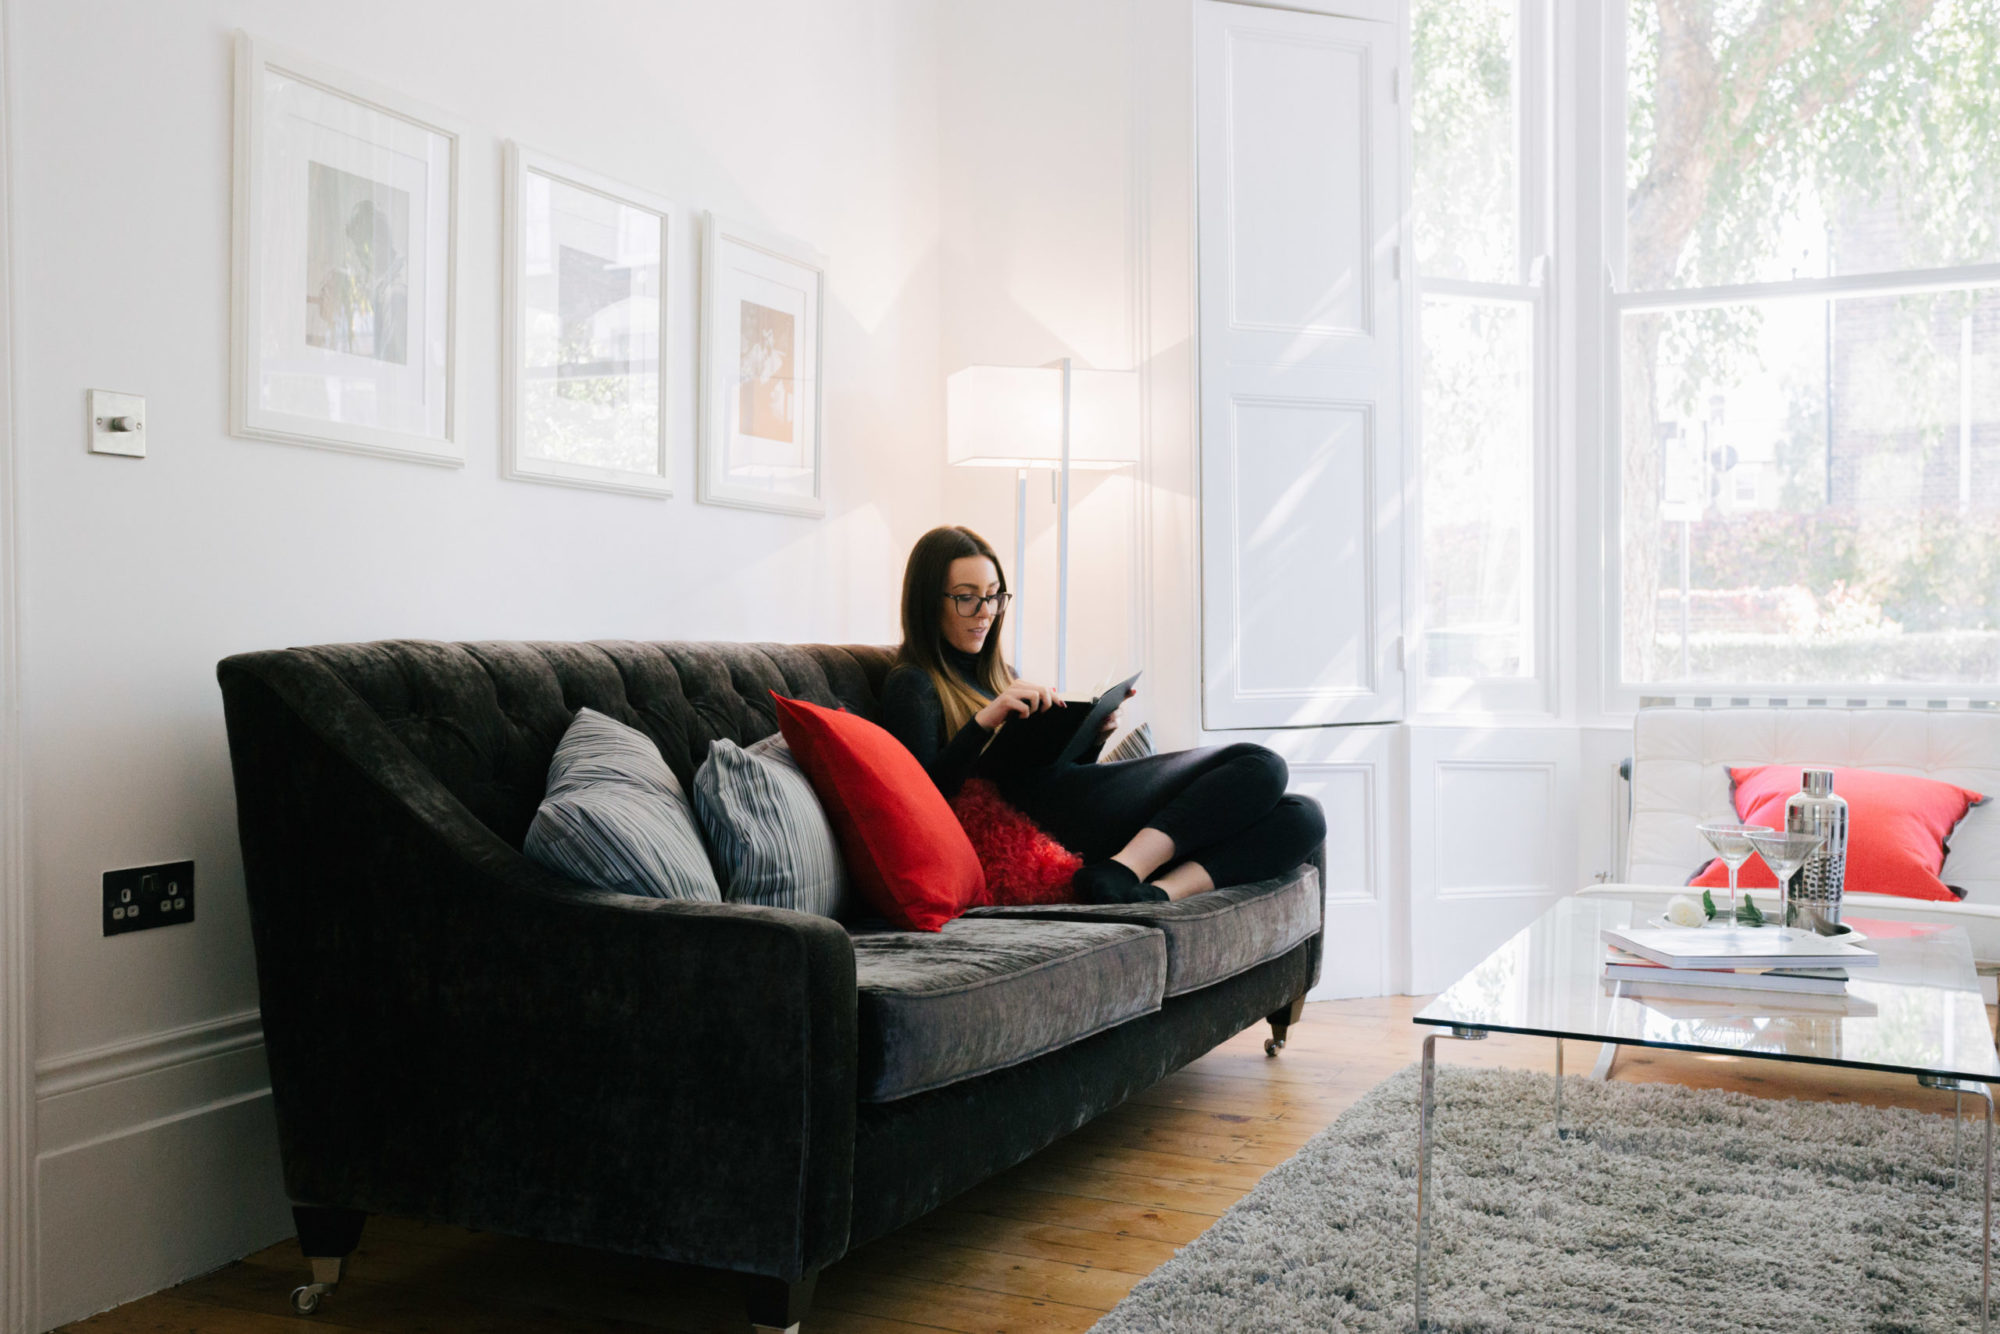 Photo of a woman sat on a sofa reading.